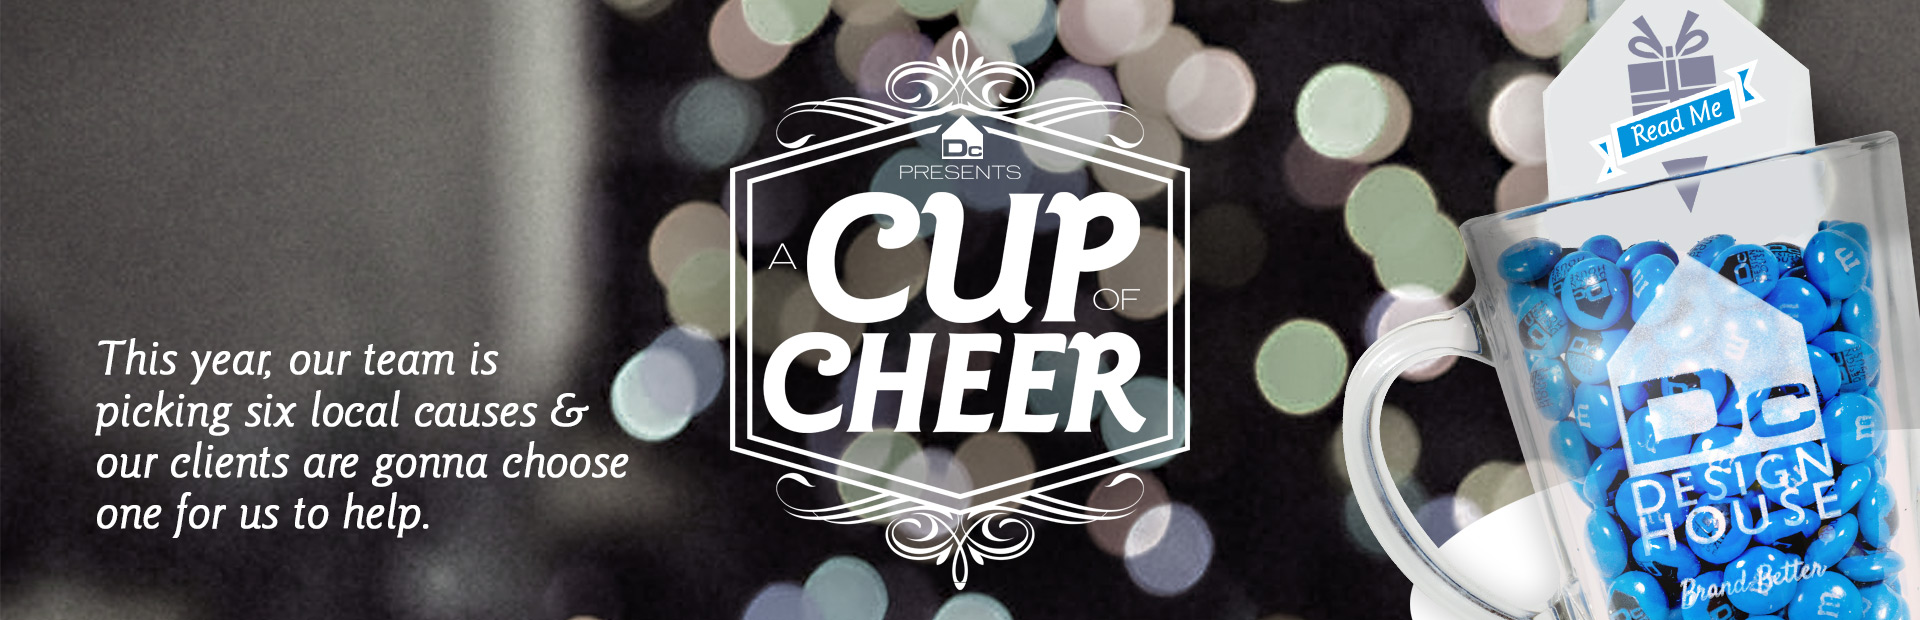 Catching up with our 'Cup of Cheer'